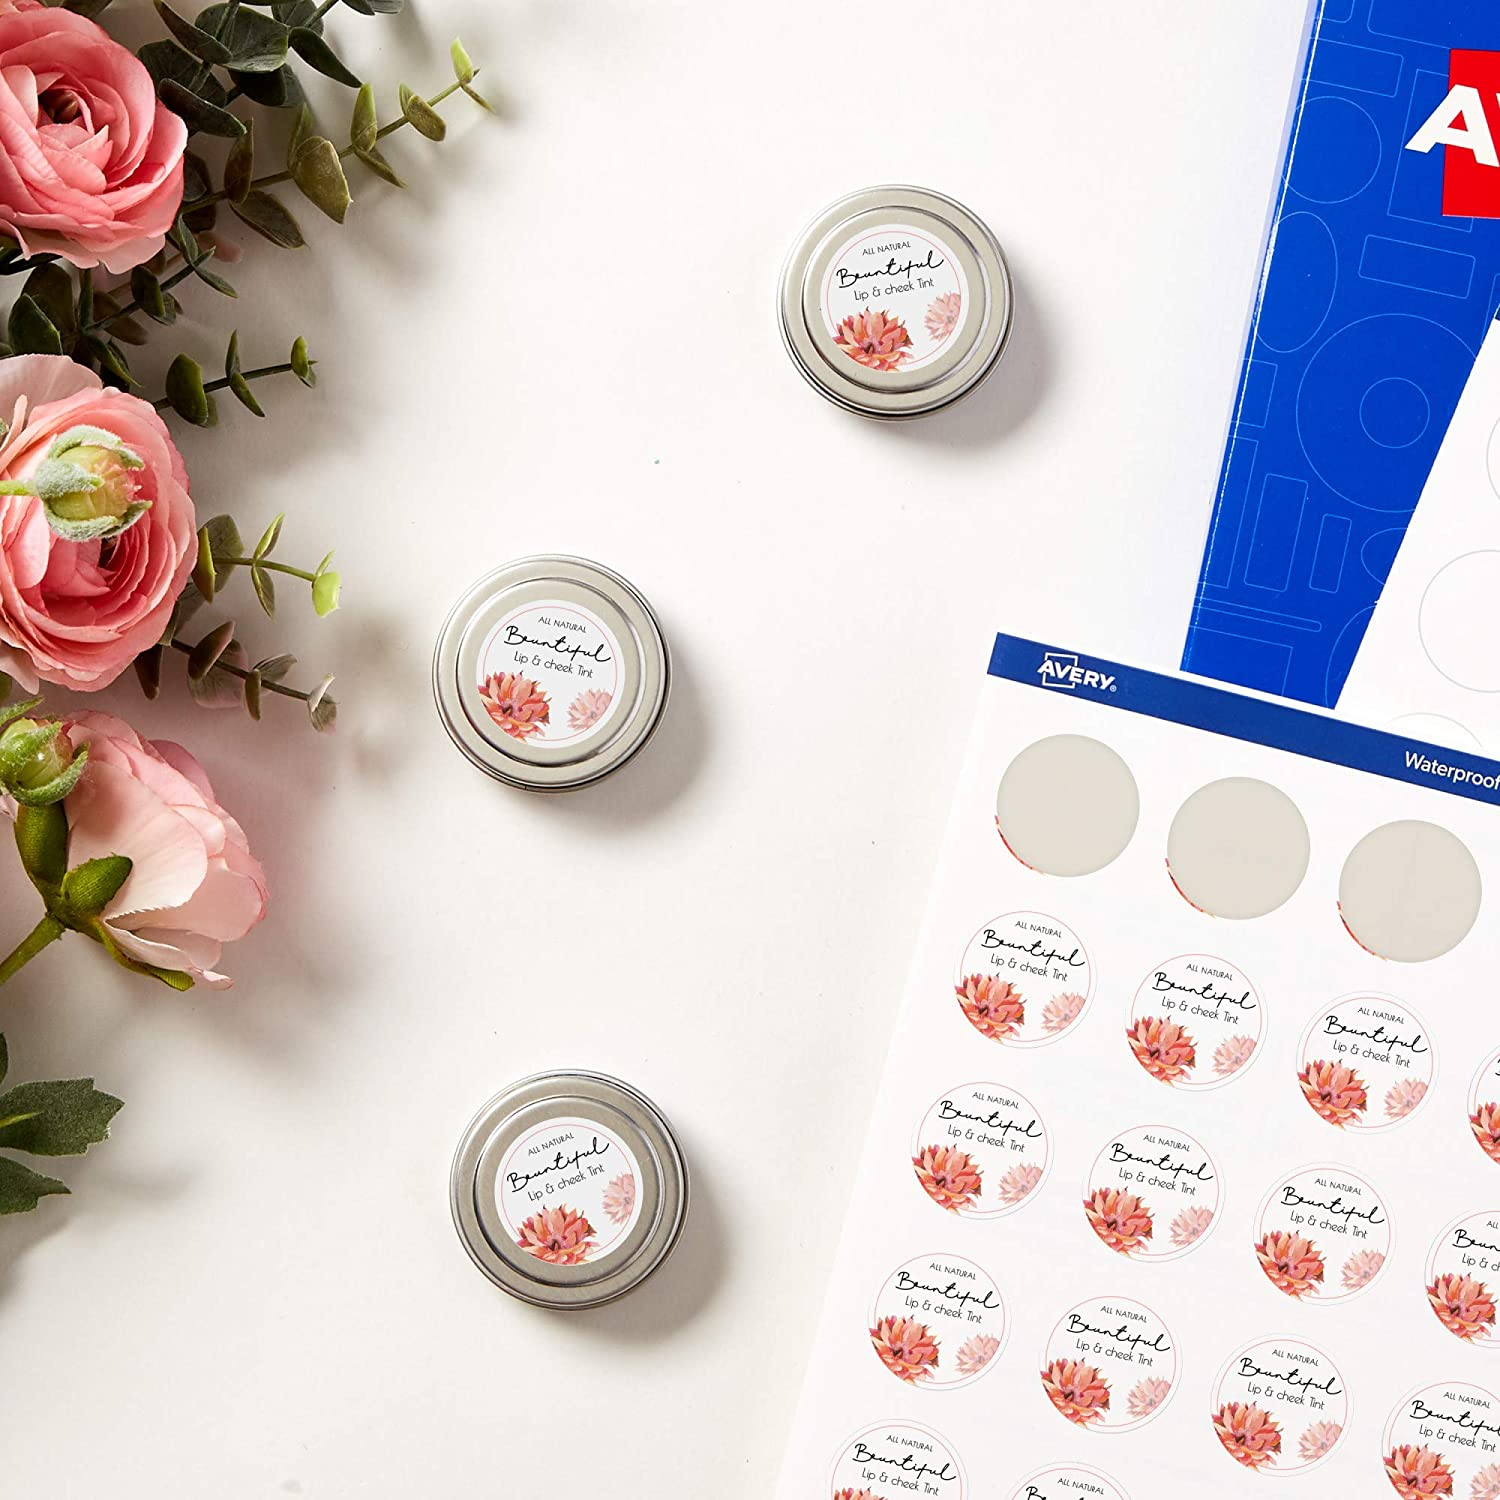 """Avery Waterproof Round Labels with Sure Feed, Print to The Edge, 1"""" Diameter, 240 White Labels (36579)"""